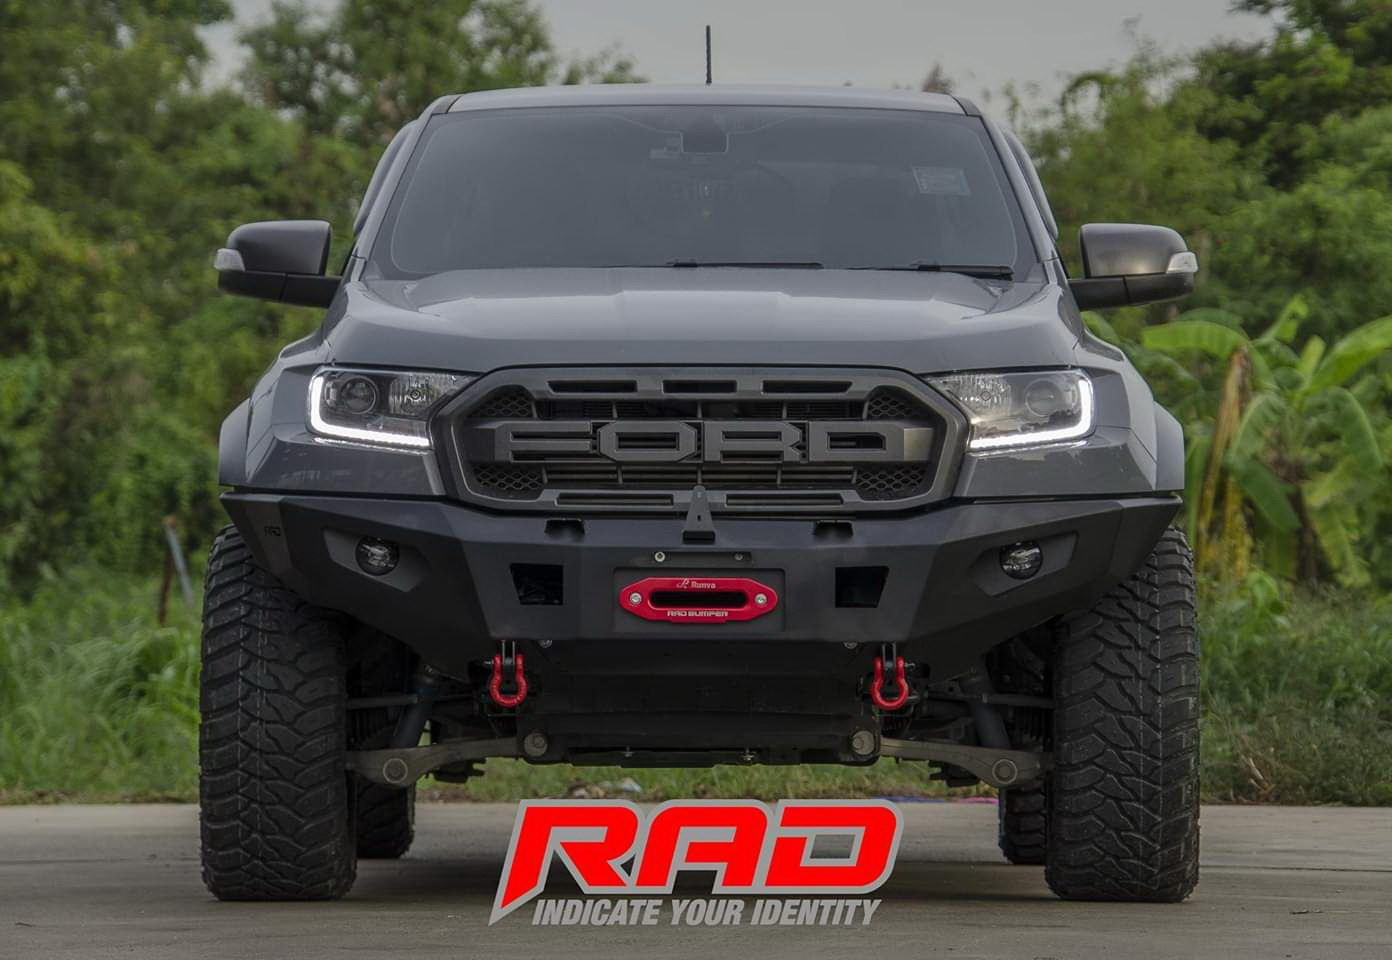 Rad on on Ford Raptor